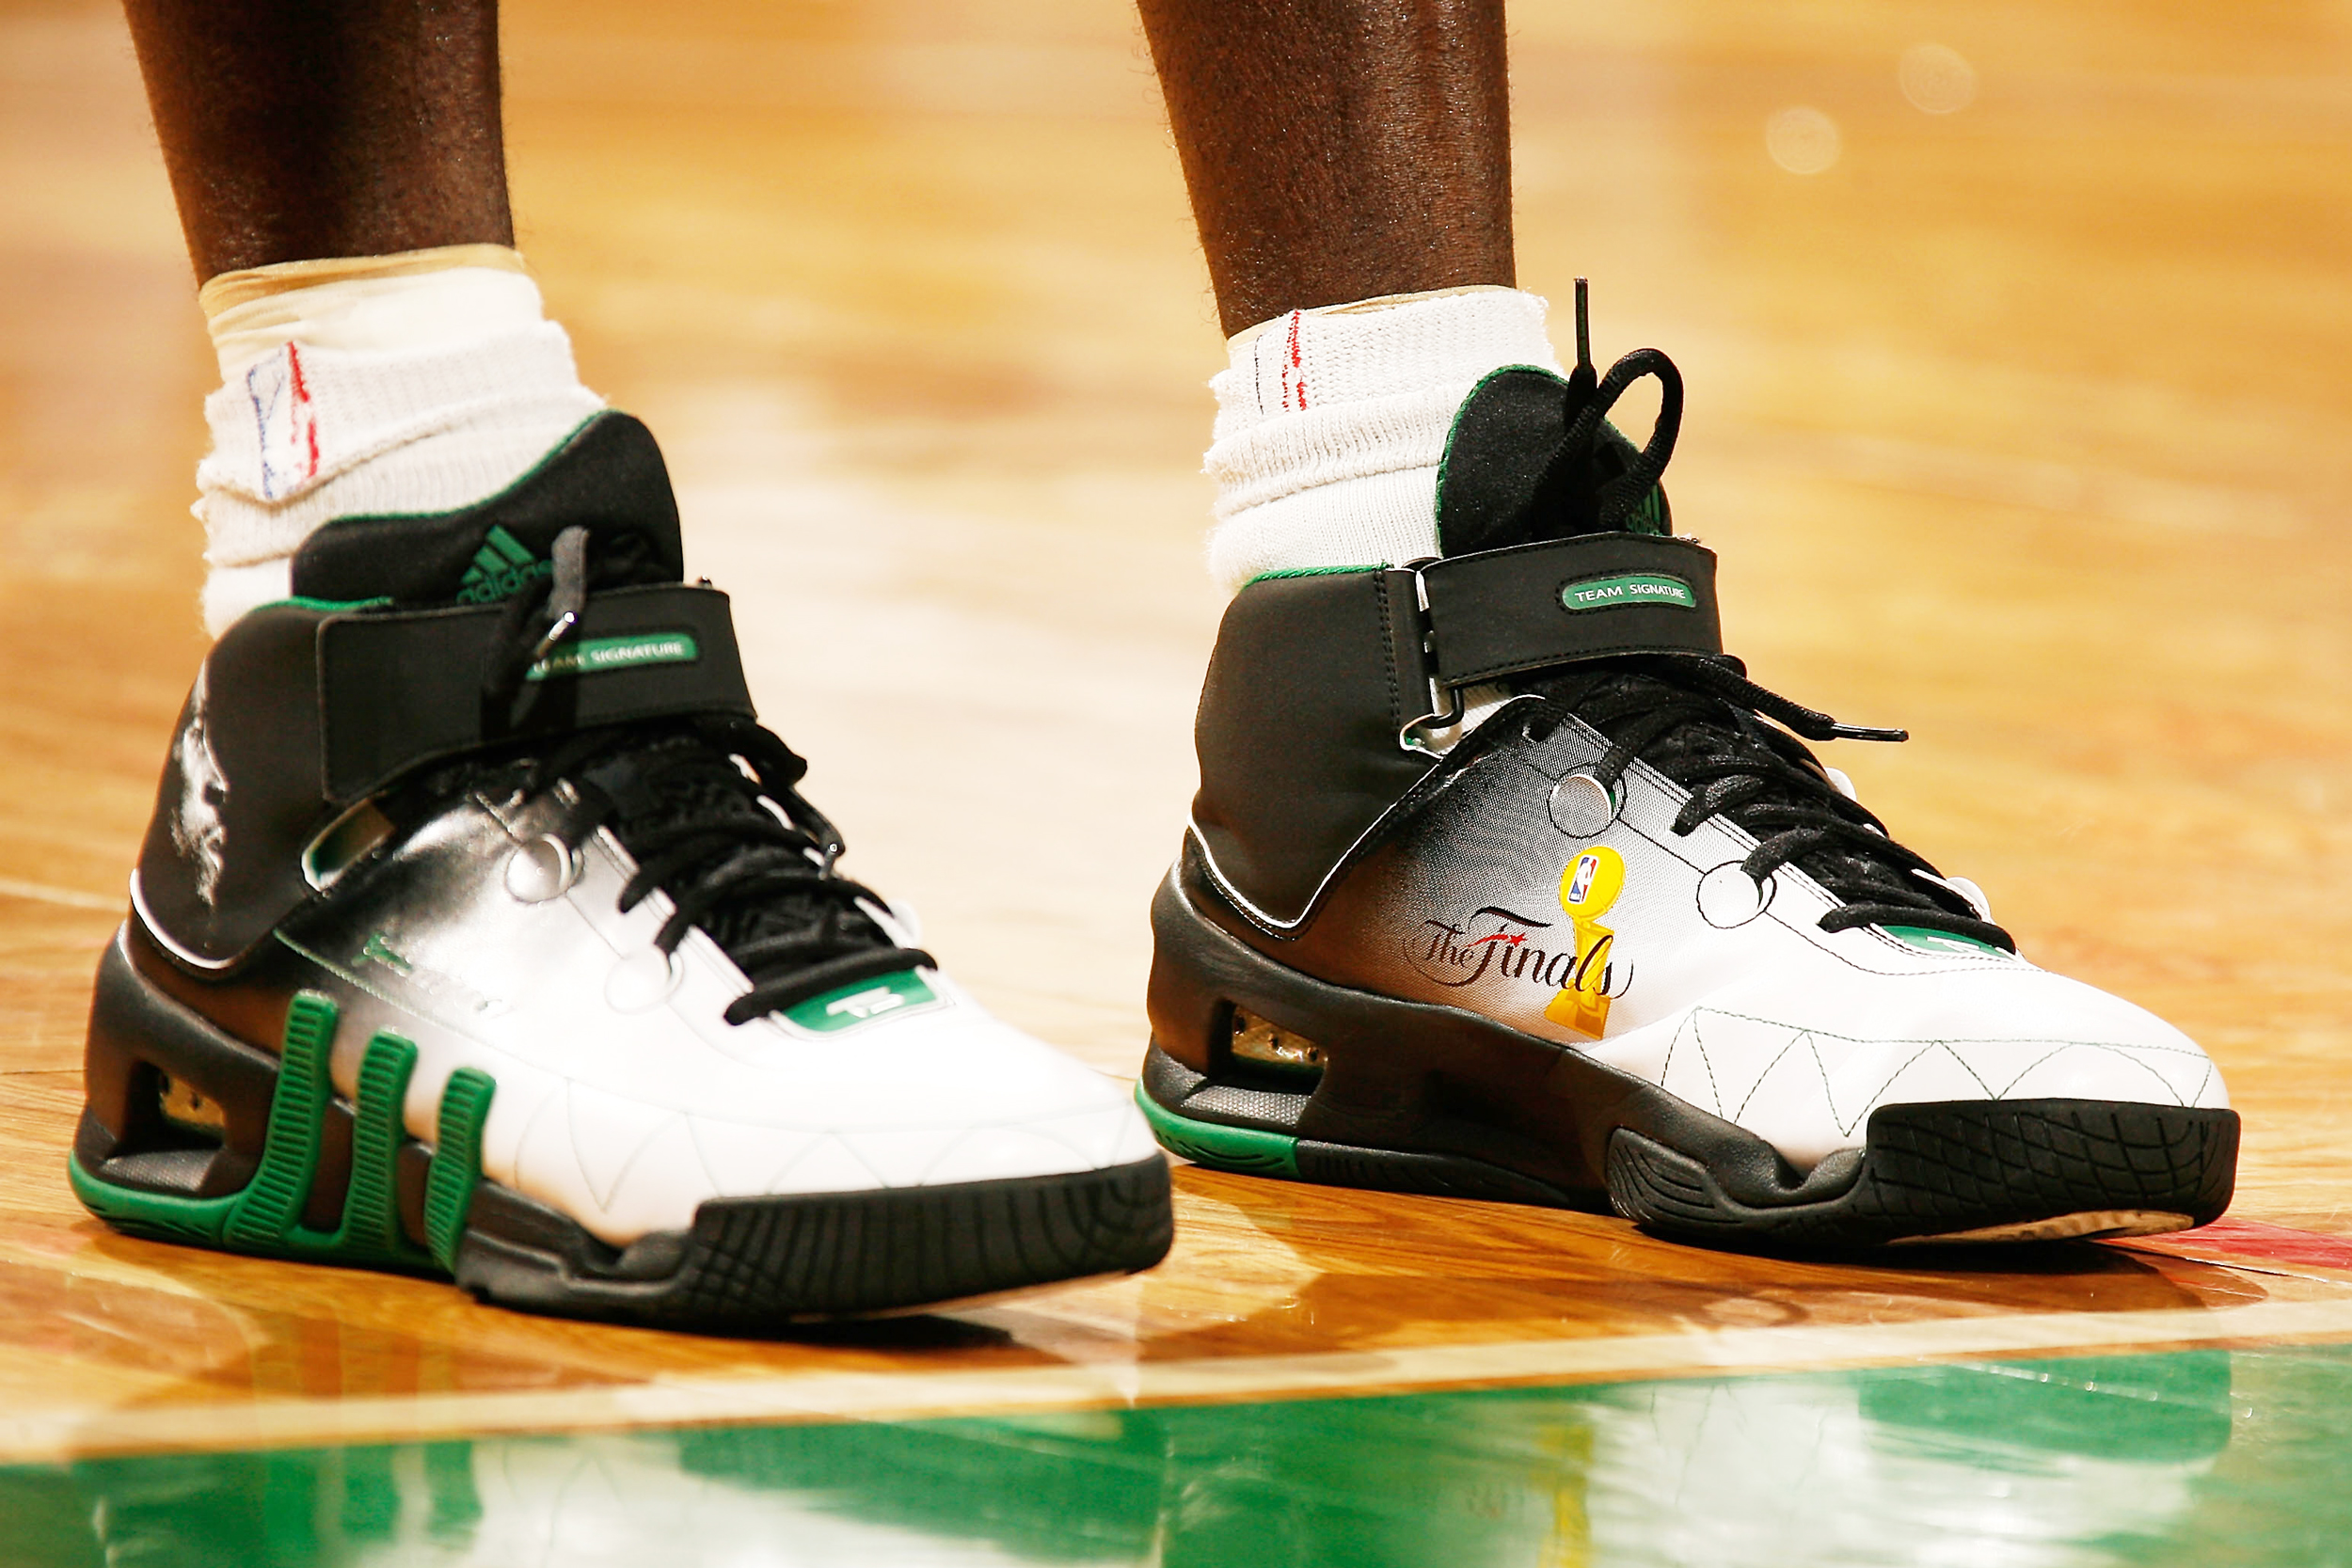 bd887dcd12c Kevin Garnett of the Boston Celtics wears a pair of unique Adidas sneakers  in honor of the 2008 NBA Finals against the Los Angeles Lakers on June 17